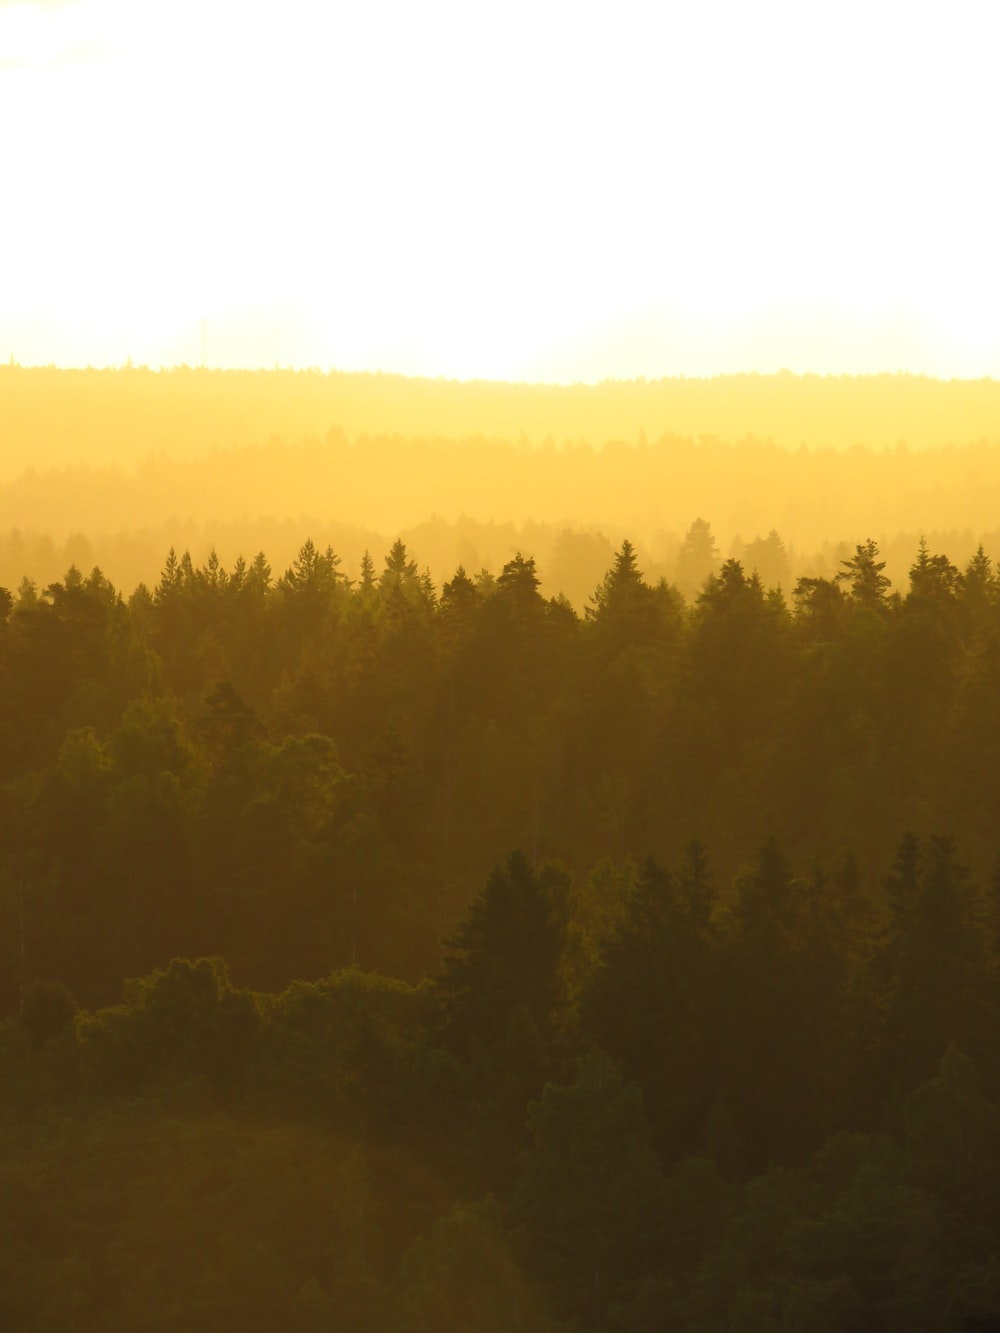 Aerial Photography Of Forest During Day